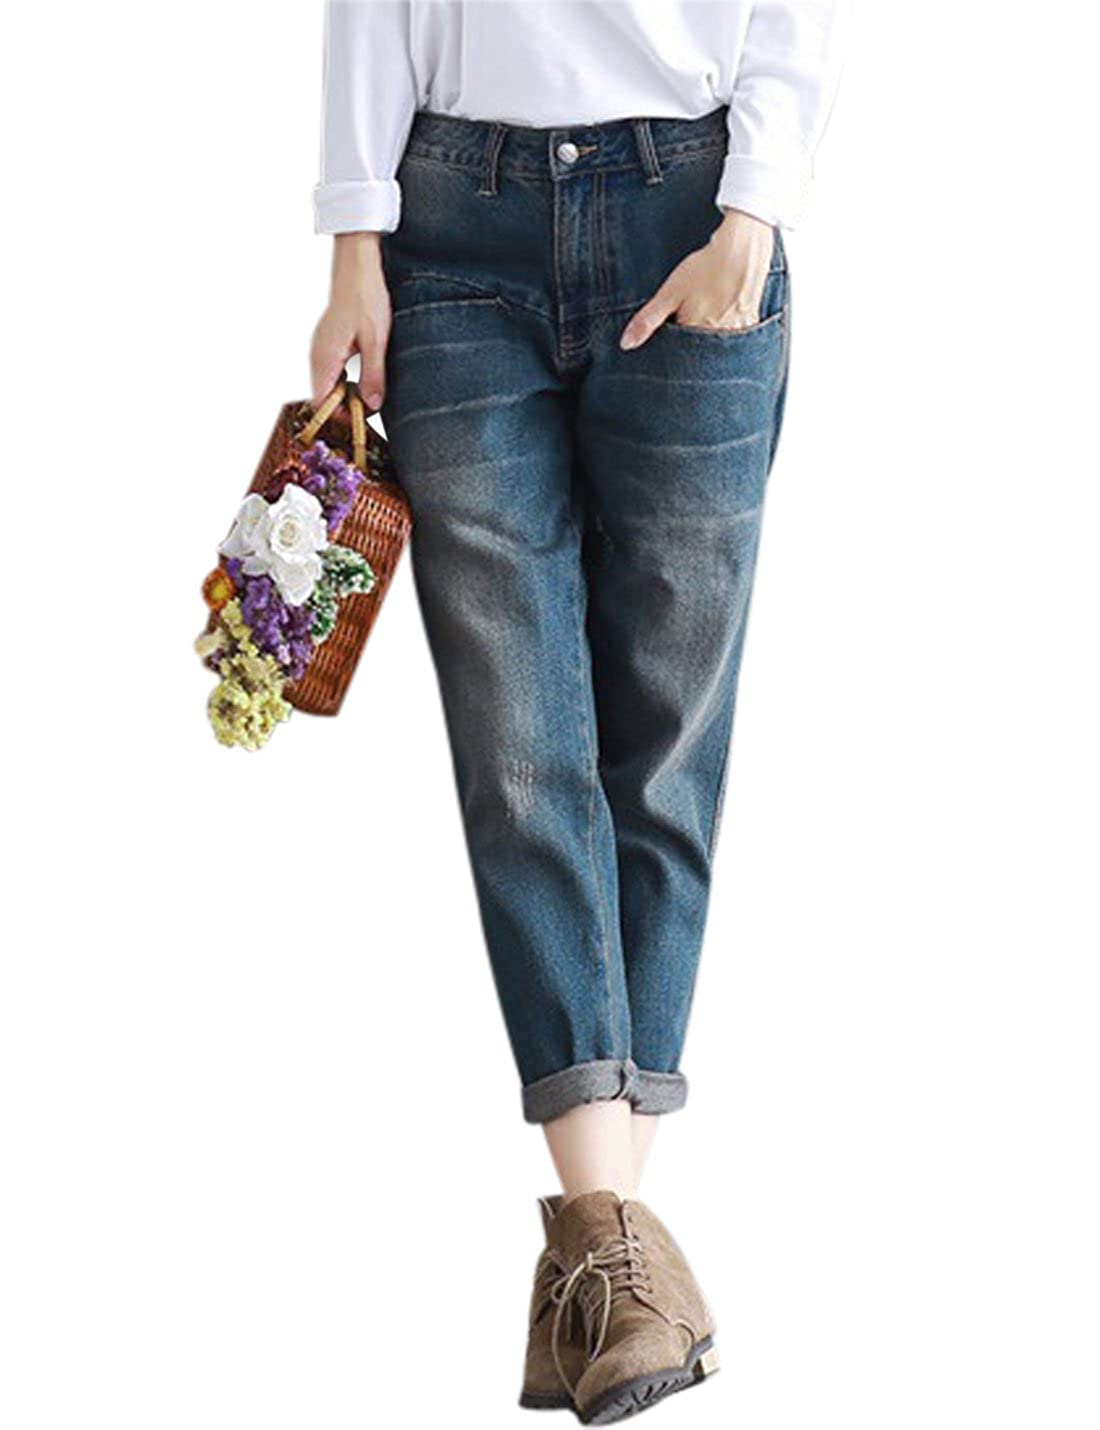 36b67f0b7df Yeokou Women s Casual Loose Distressed Baggy Harem Denim Jeans Cropped  Pants at Amazon Women s Jeans store